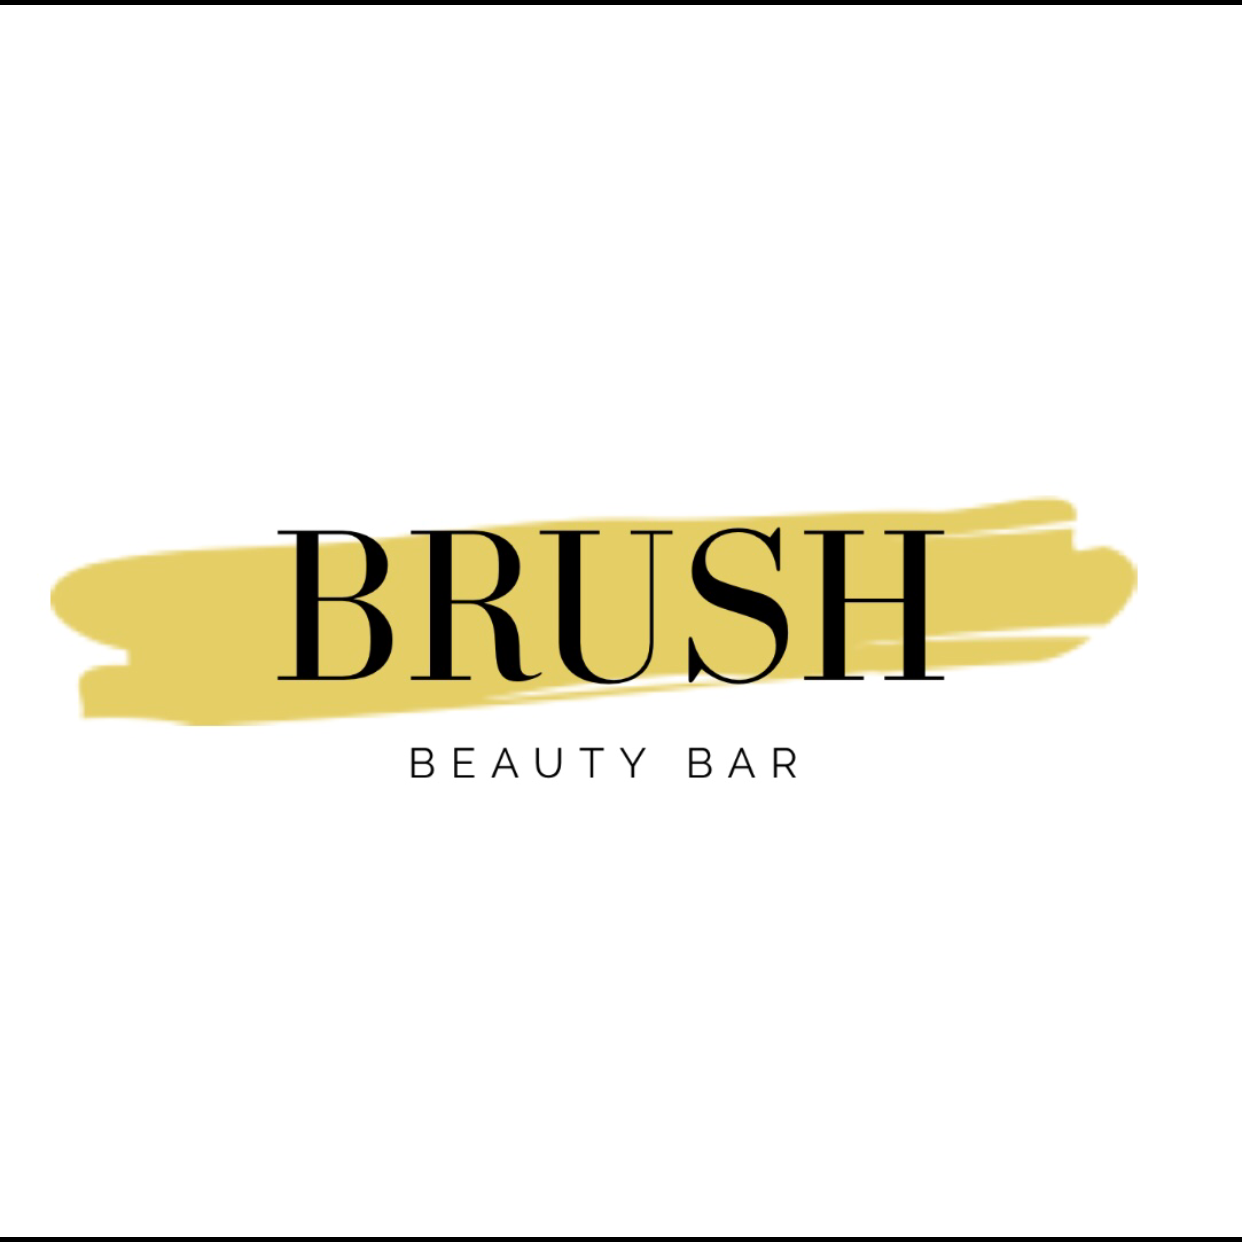 BRUSH BEAUTY BAR